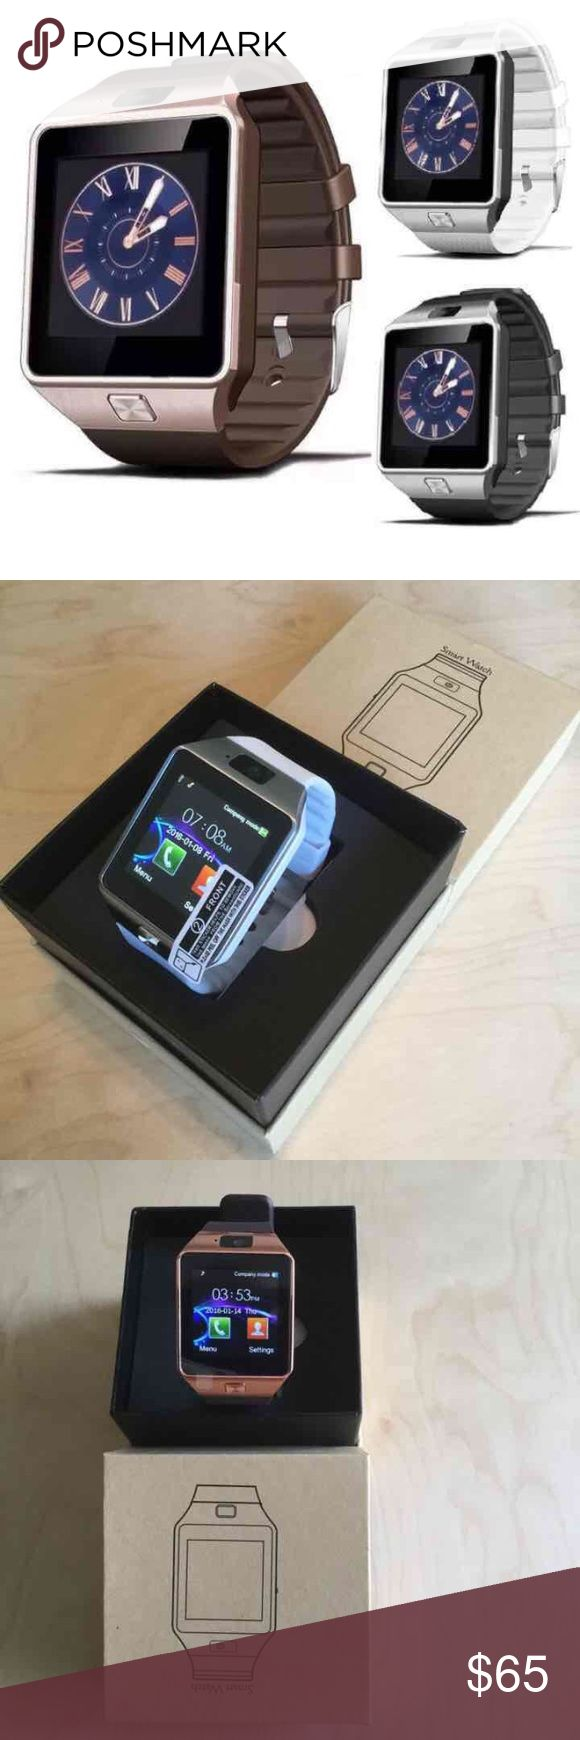 2 for $65 Camera Smart Watch SIM optional SALE!!! Smart watch like Samsung Gear 2 with camera and SIM slot. Colors: Silver with black strap, Gold with brown strap, silver with white strap, and black with black strap(this color no box). New in box bluetooth smartwatch Android (including Samsung ), and iOS (including iPhone ) compatible. Please message me your choices. unlocked Accessories Watches